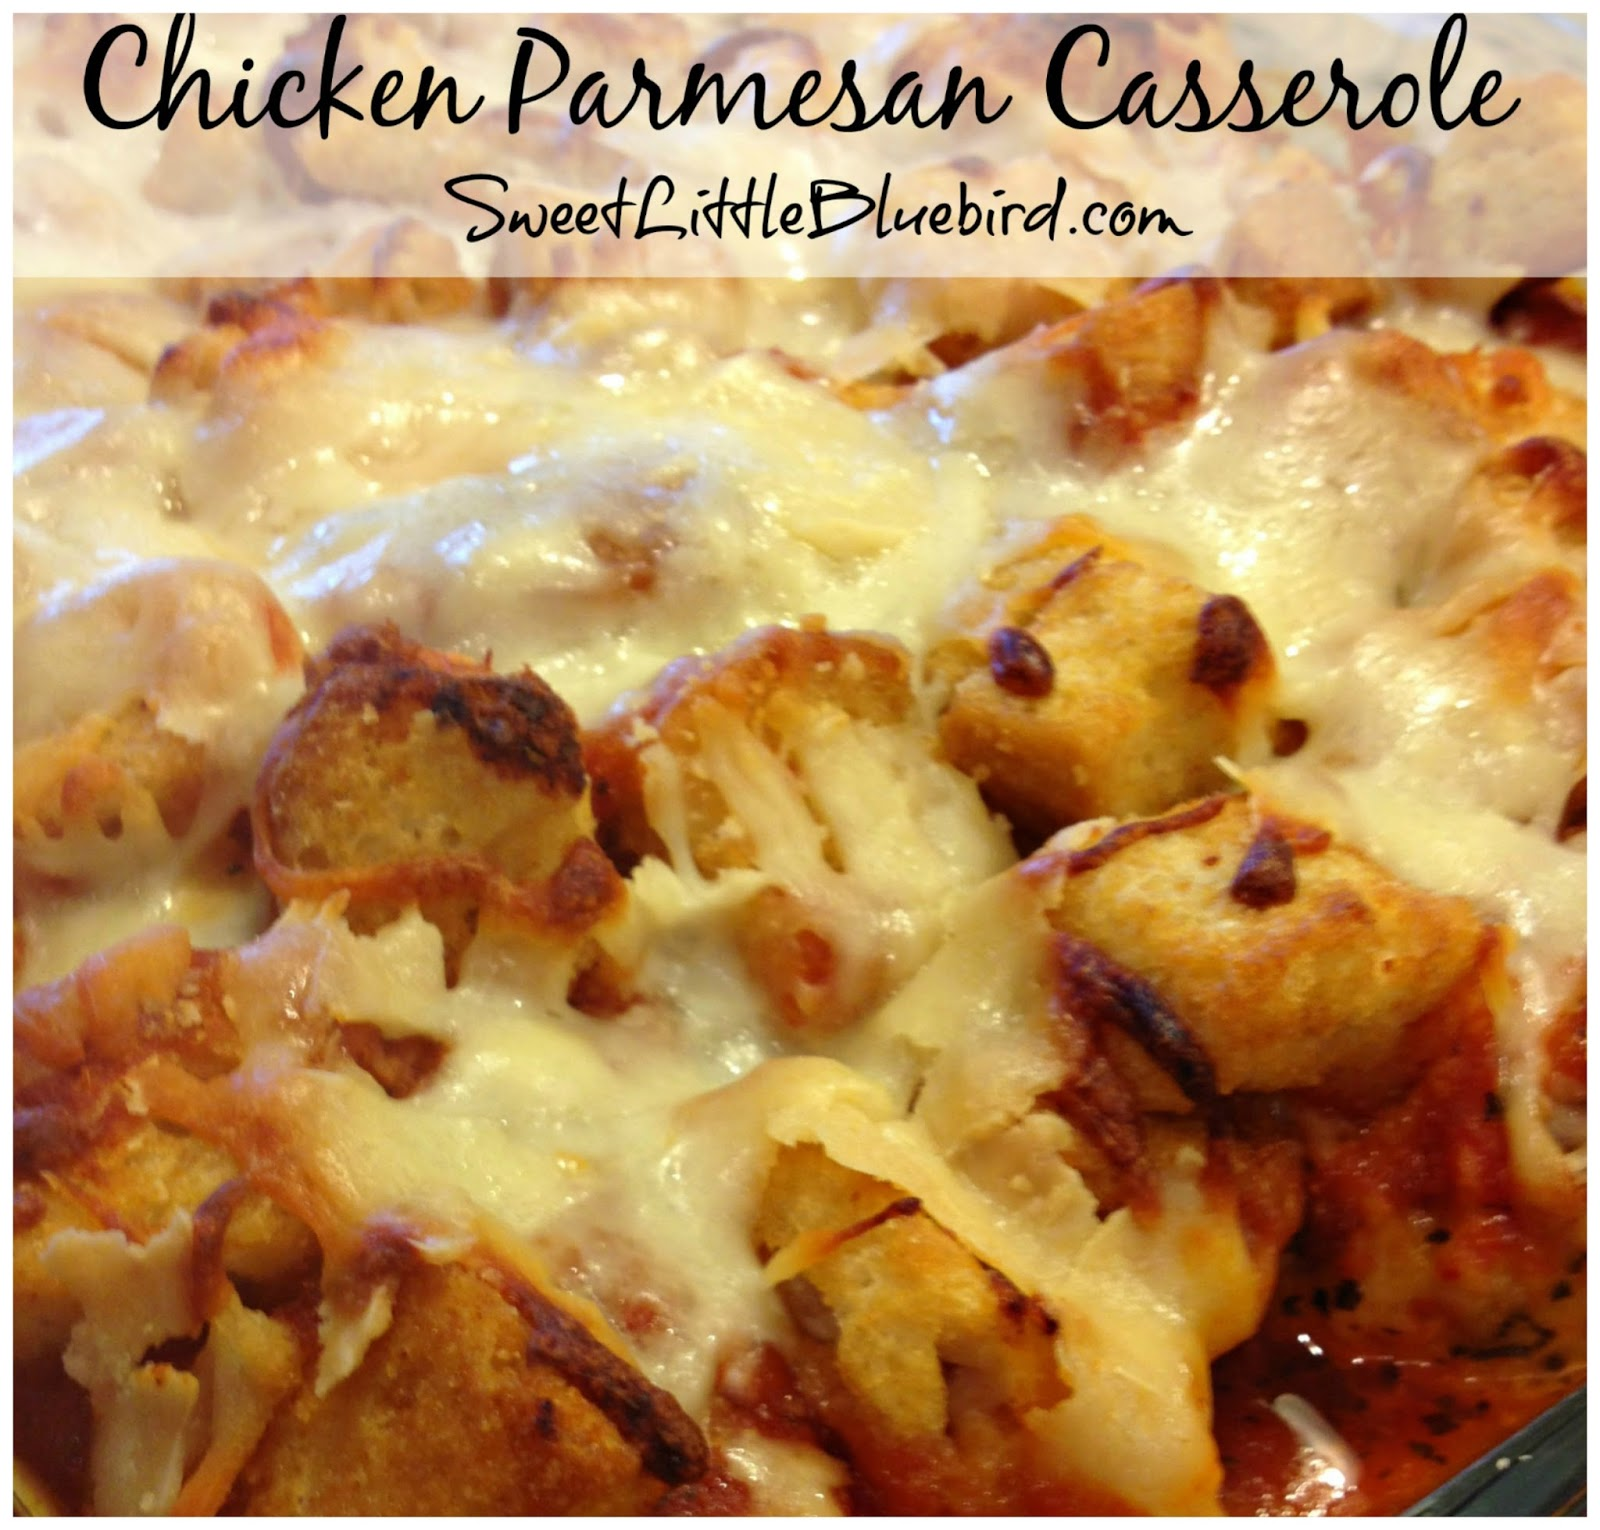 Chicken parmesan bake recipe with croutons